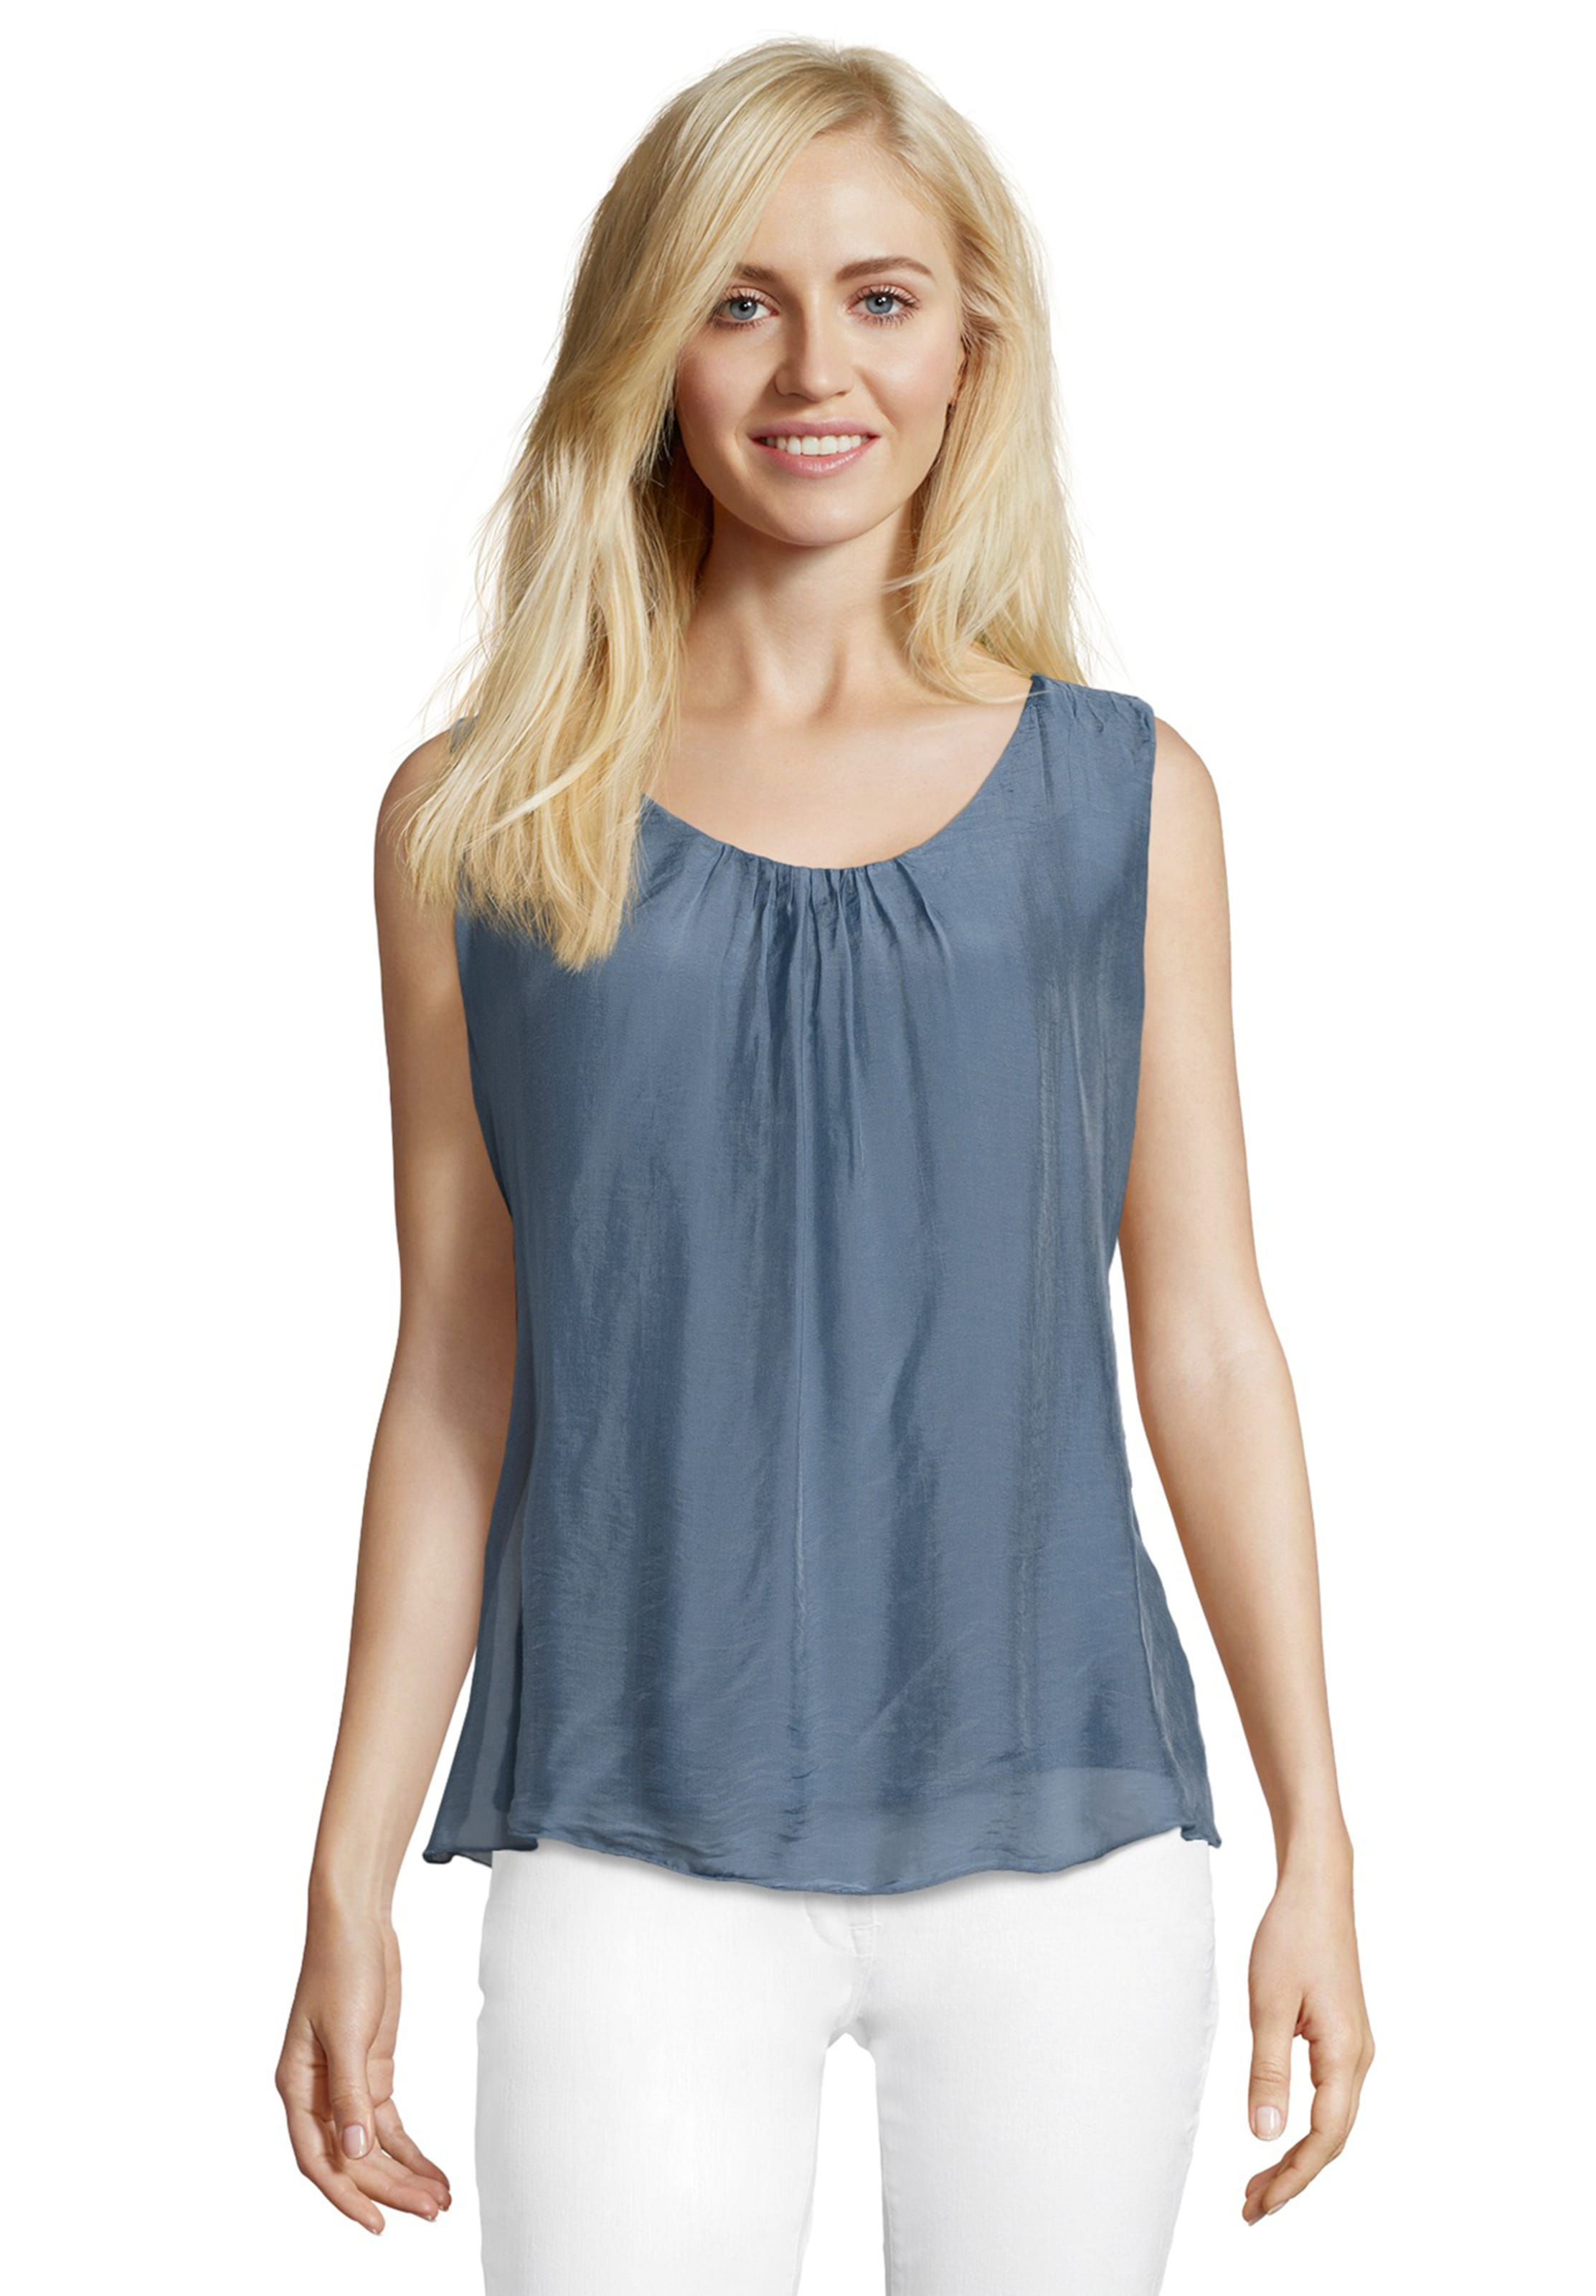 Blusentop Himmelblau Barclay In Himmelblau Betty Betty In Barclay Betty Blusentop rshBoQCdtx